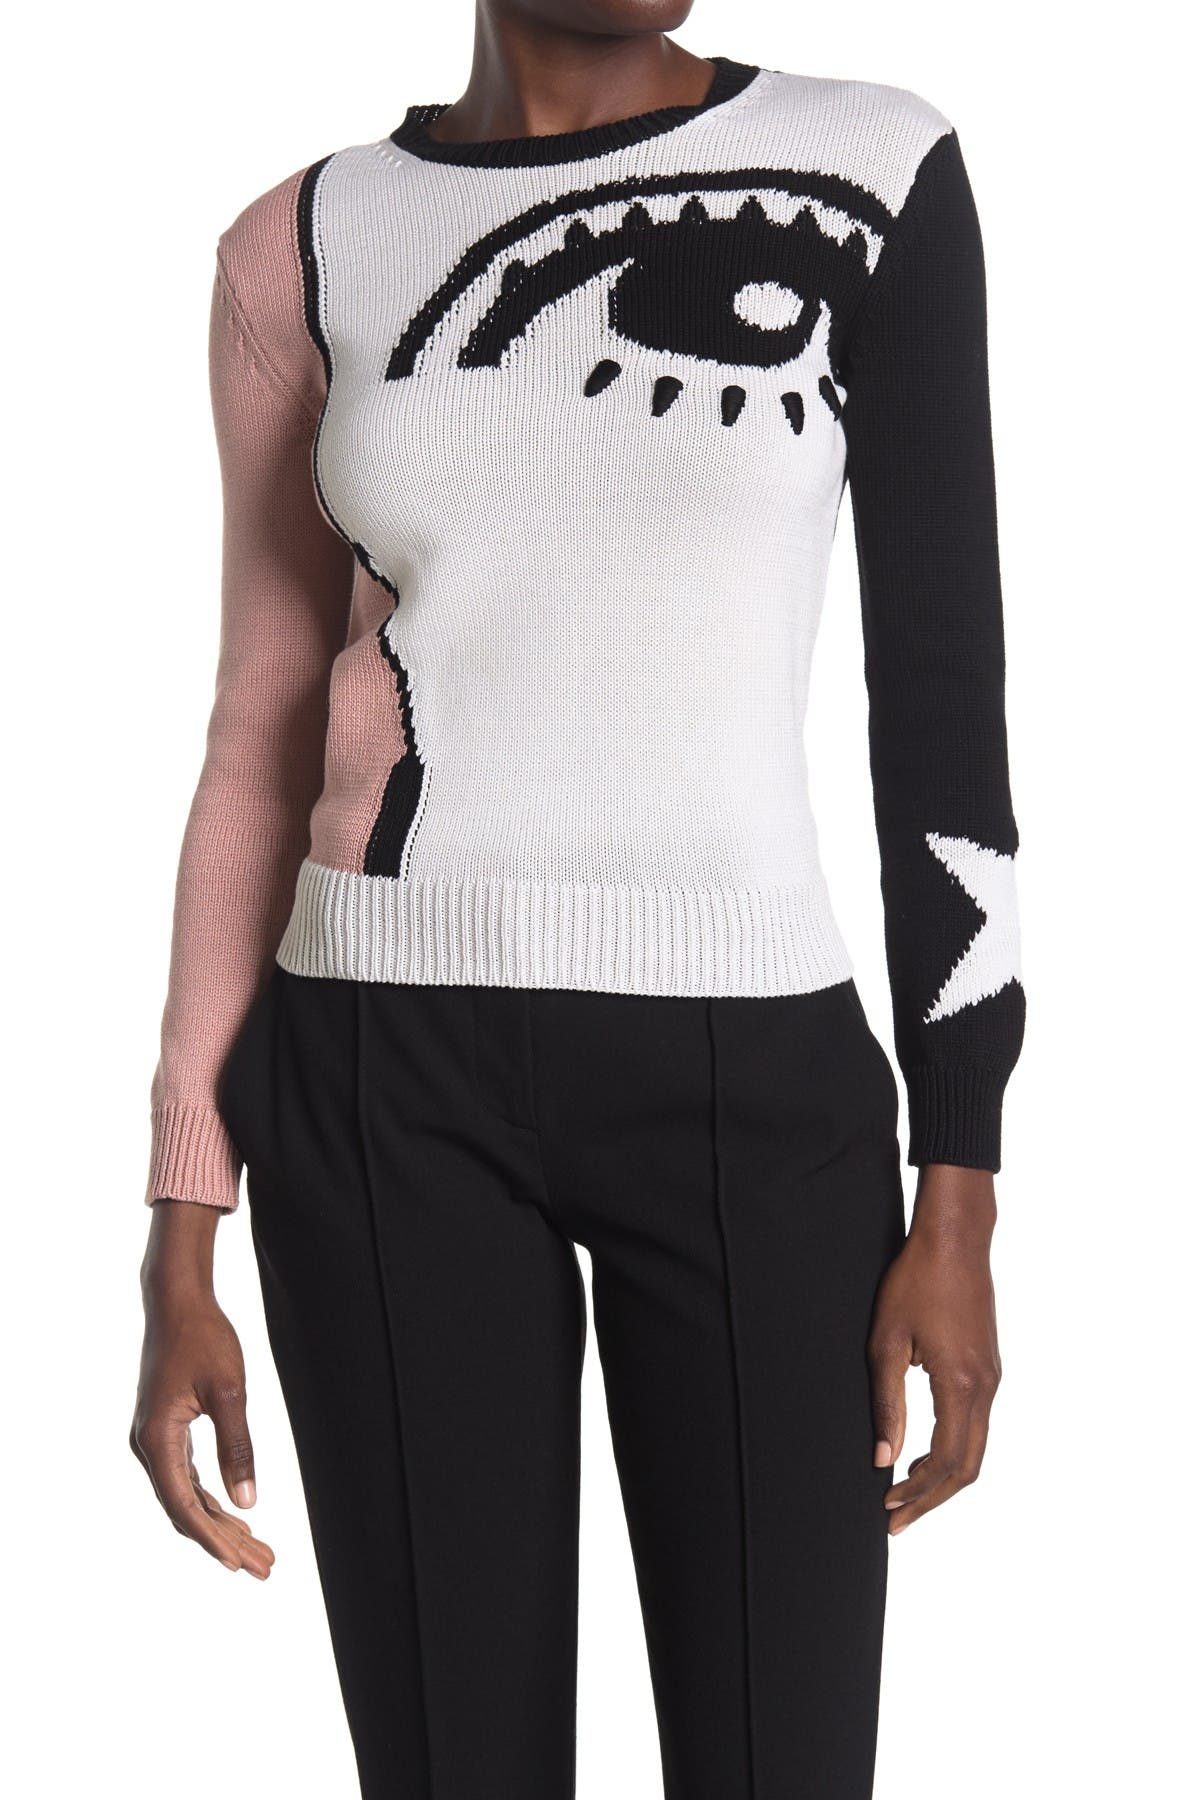 Image of RED Valentino Maglia Abstract Print Sweater